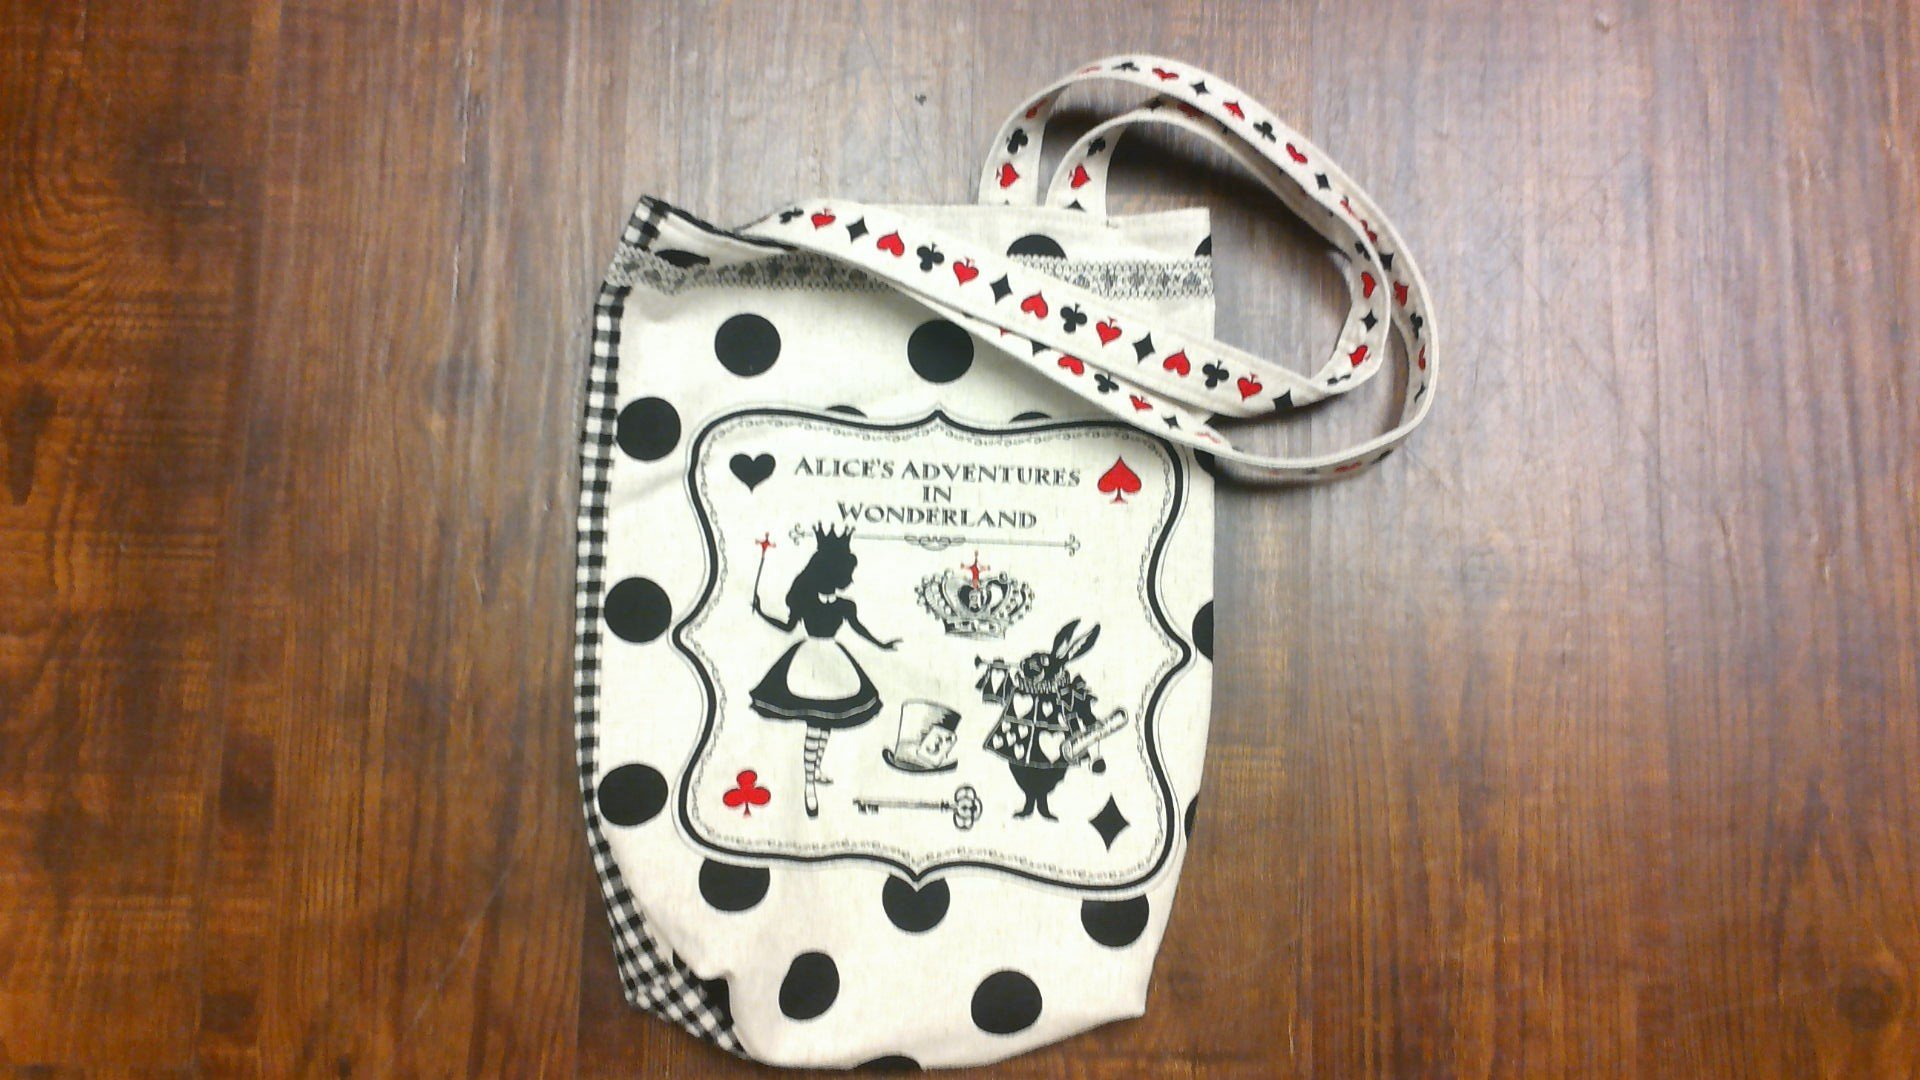 Alice in Wonderland Bag 2